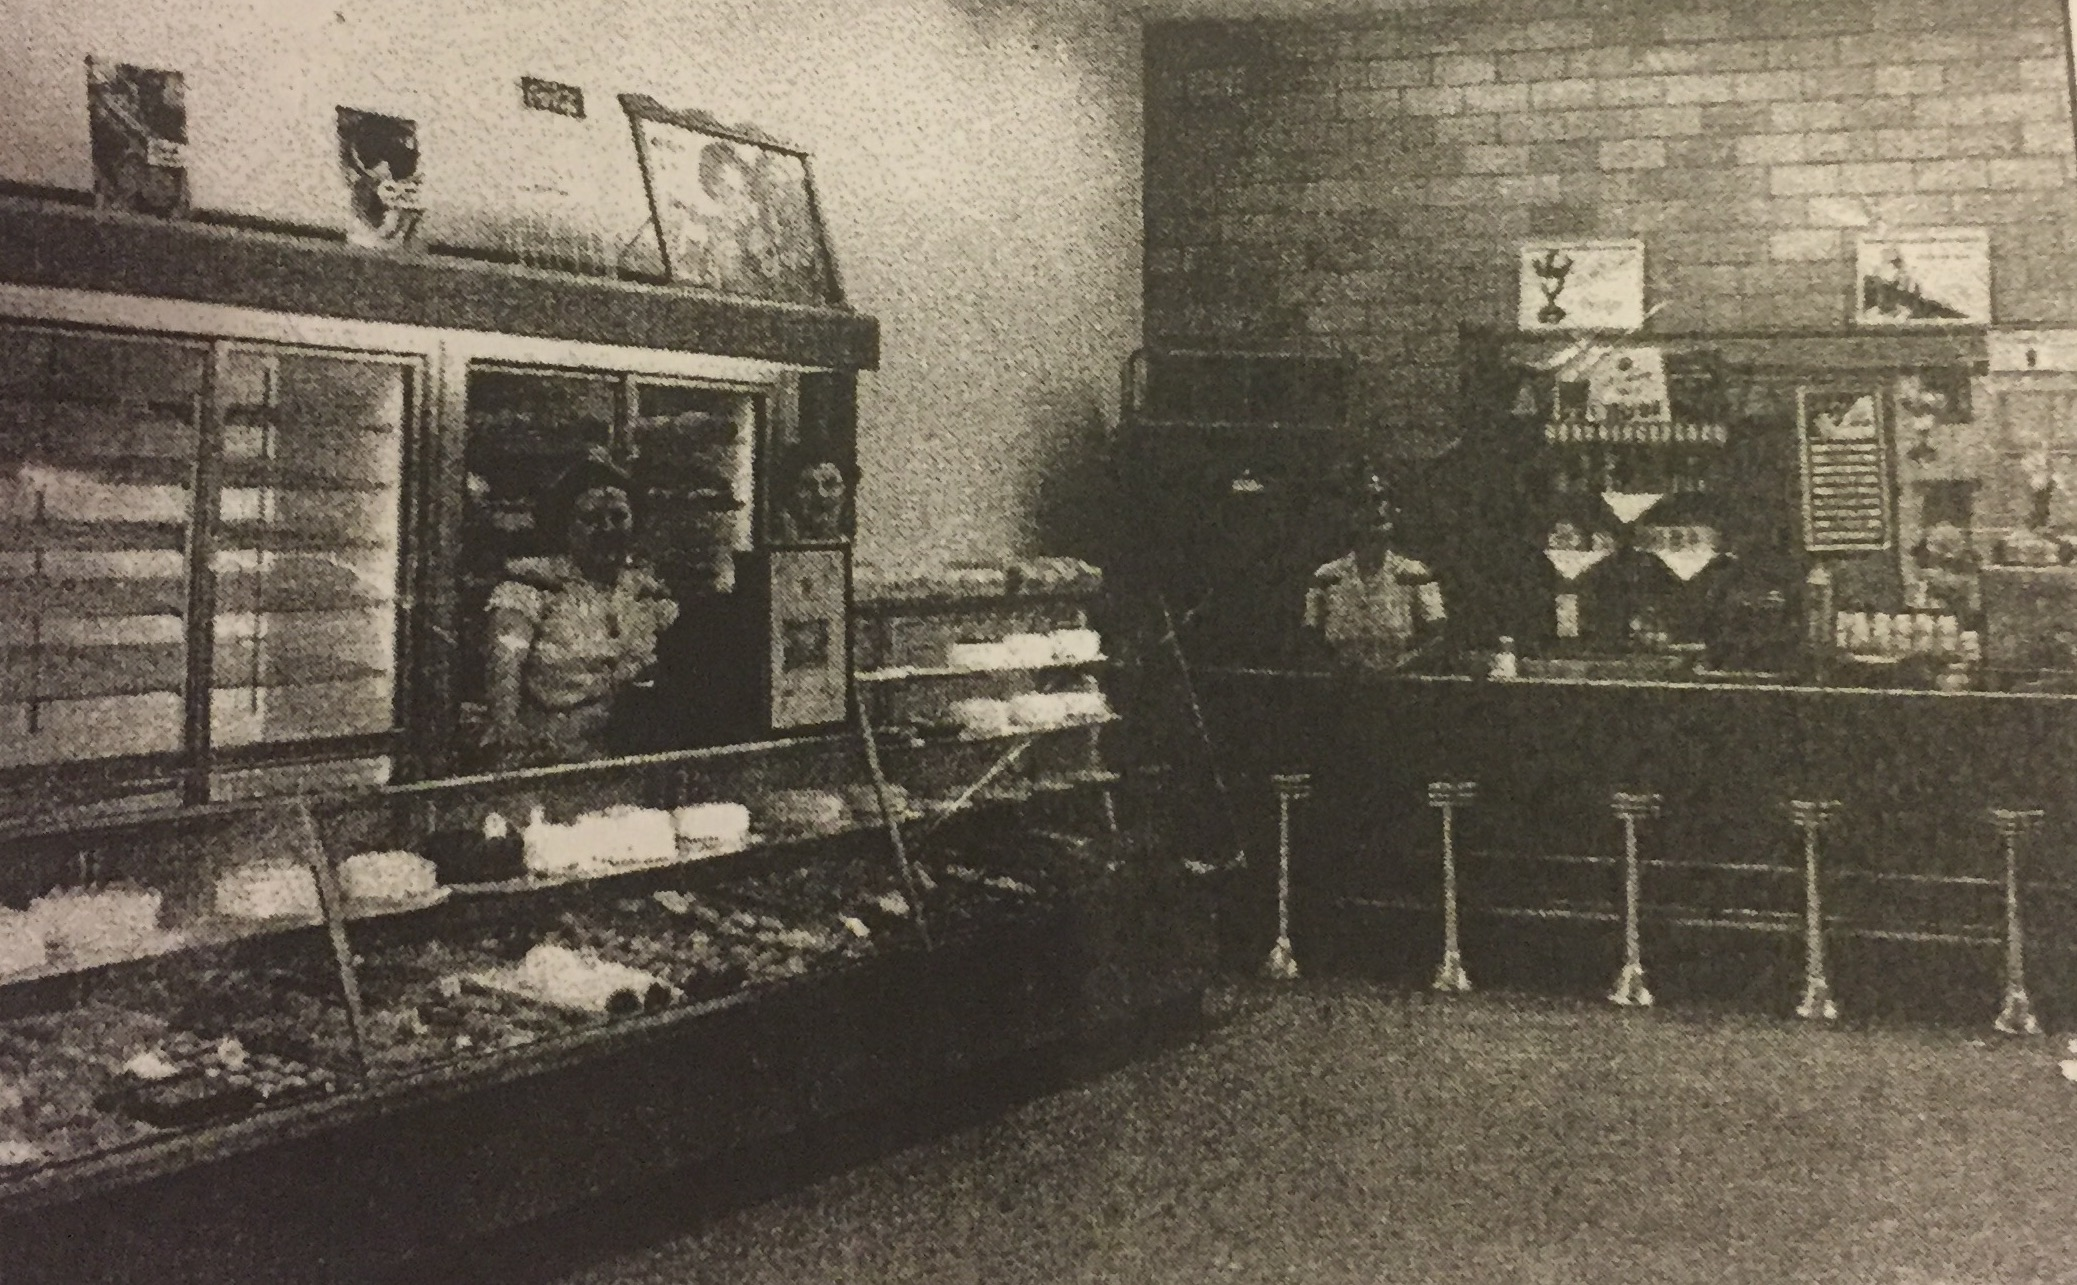 Inside of Tipton's Bakery